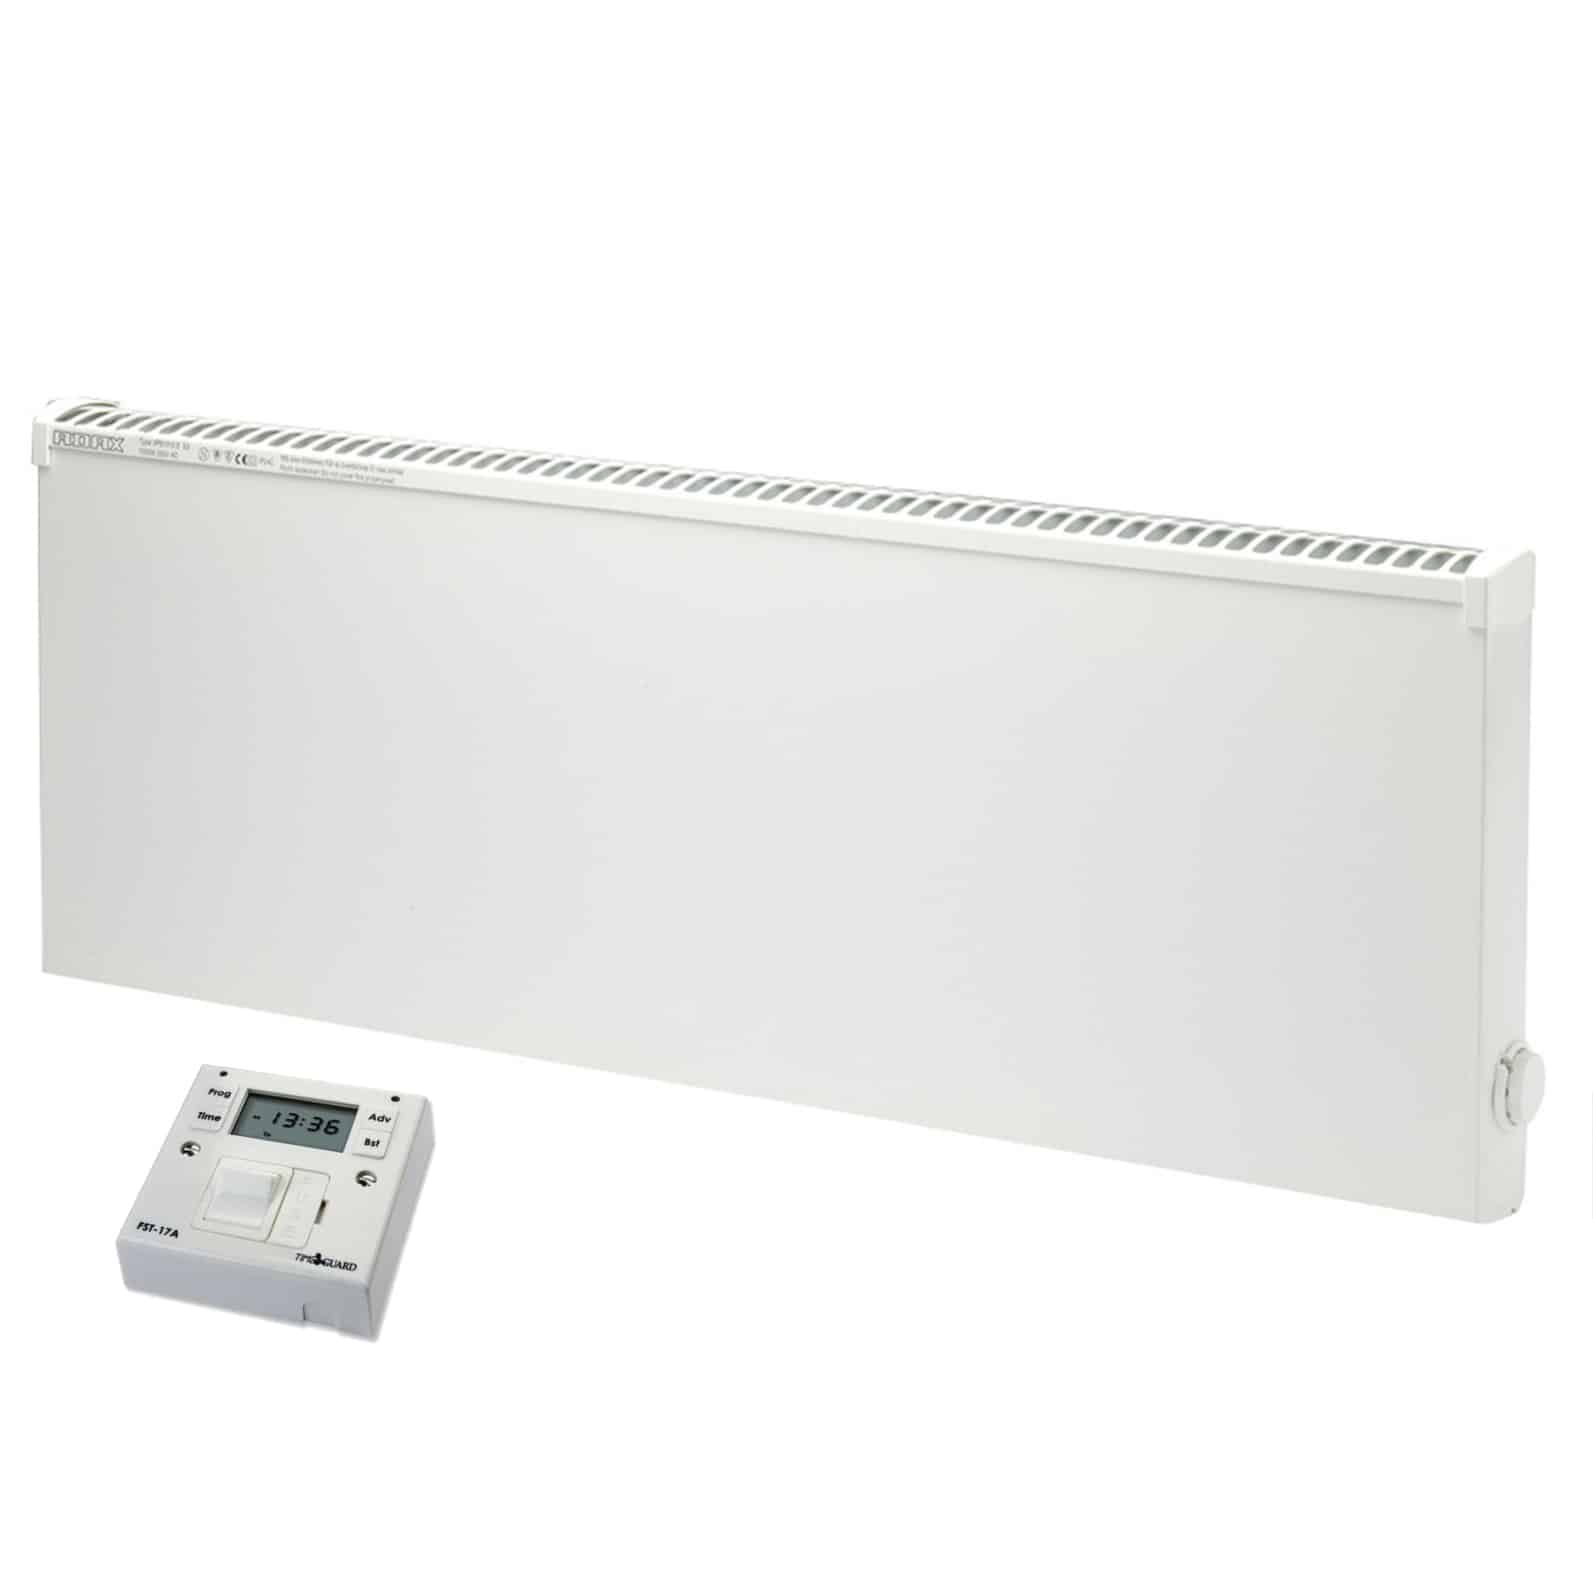 ADAX VPSL Low Surface Temperature Electric Panel Heater / Convectpr Radiator, Wall Mounted + Fused Spur Timer